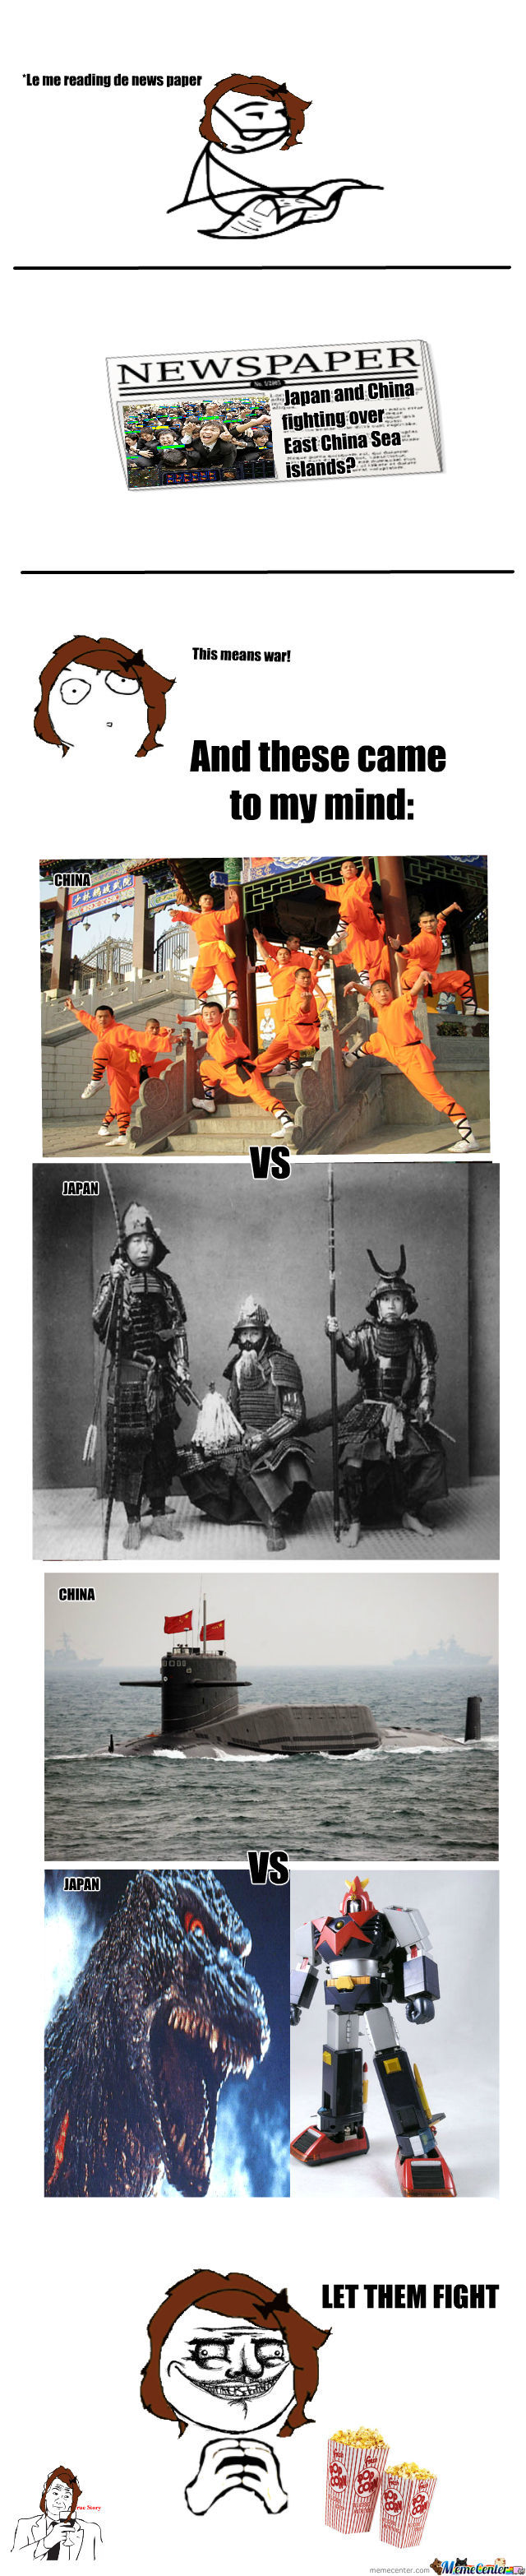 How I Picture The Battle Of China Vs Japan